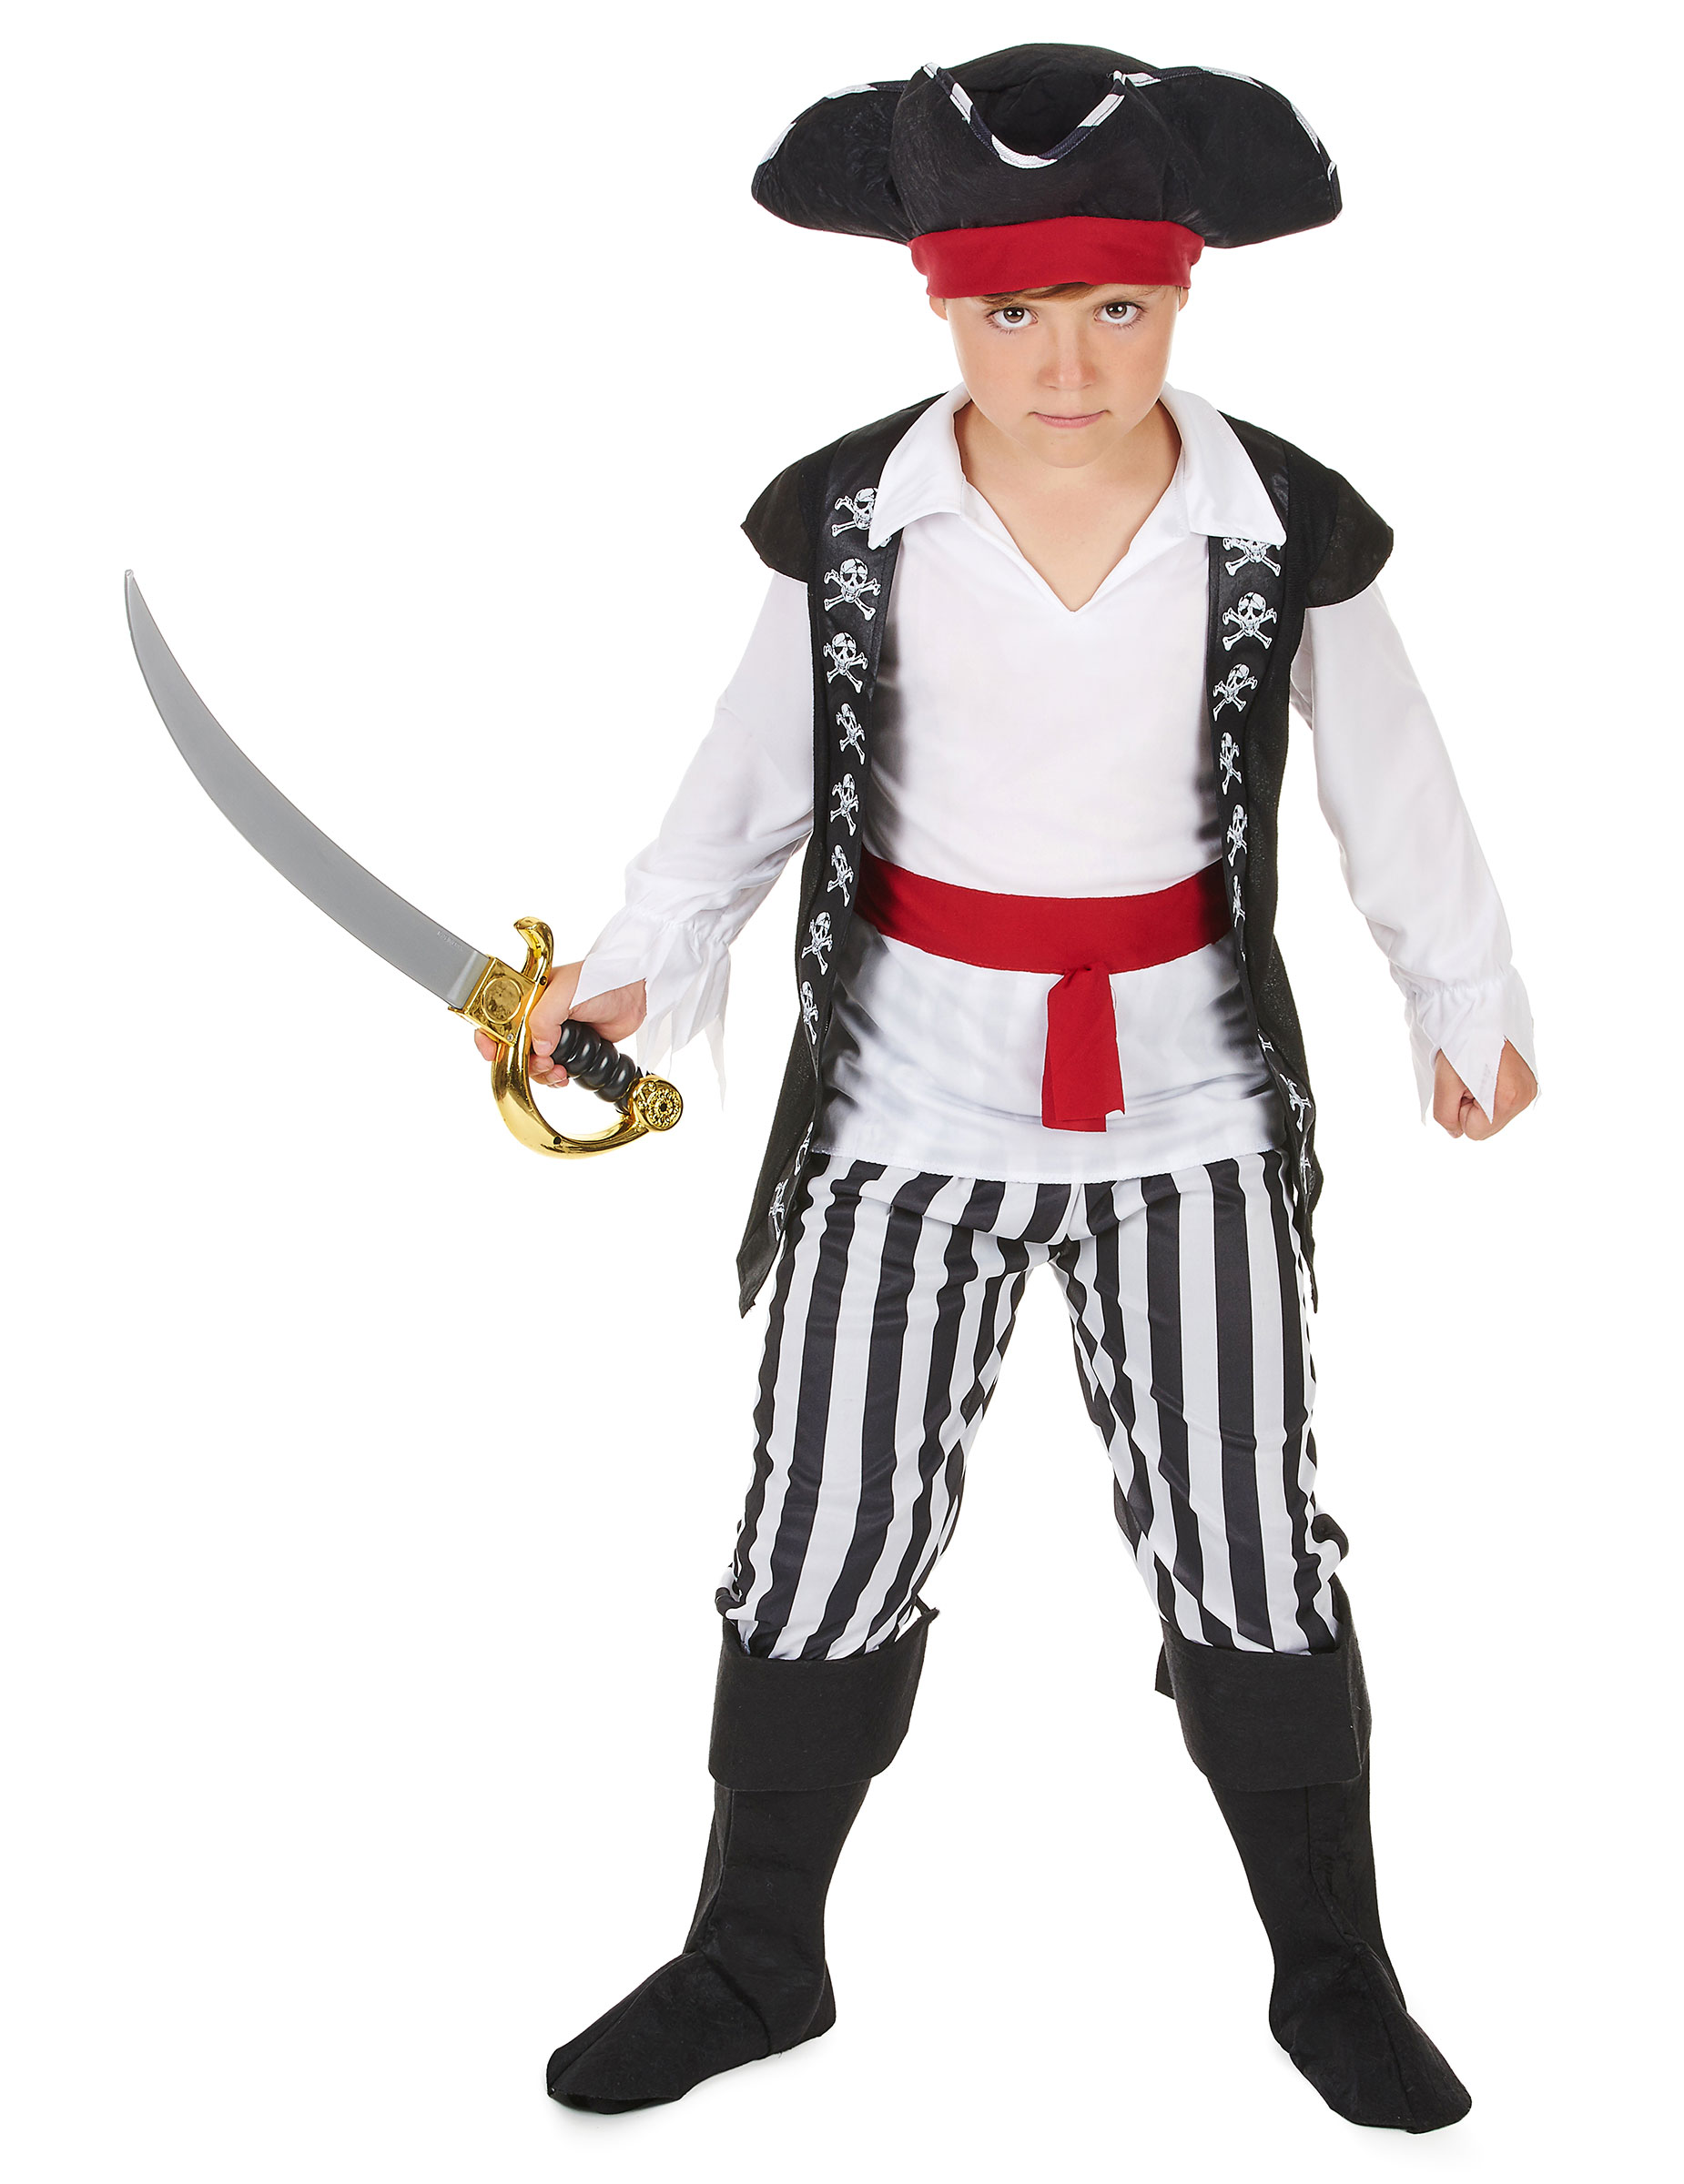 costume de pirate garçon